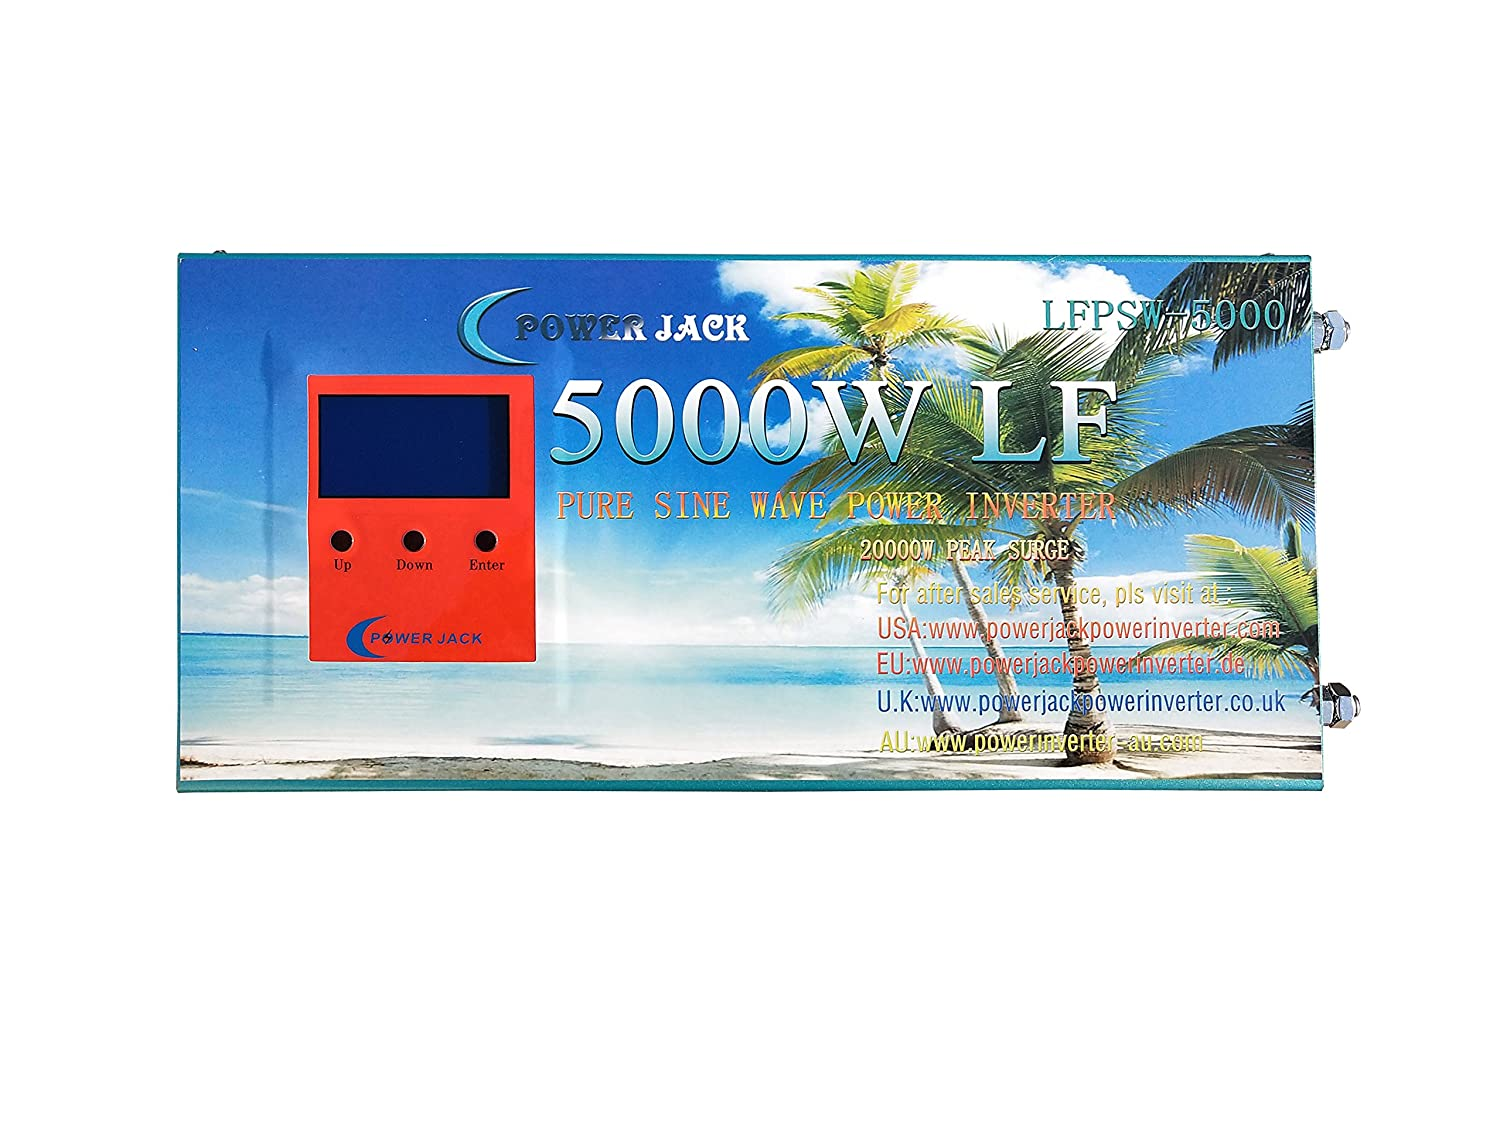 20000w Peak 5000w Lf Pure Sine Wave Power Inverter Dc Circuit Diagram In Addition 12v To Ac 110v With 80a Bc Ups Lcd Display Car Electronics